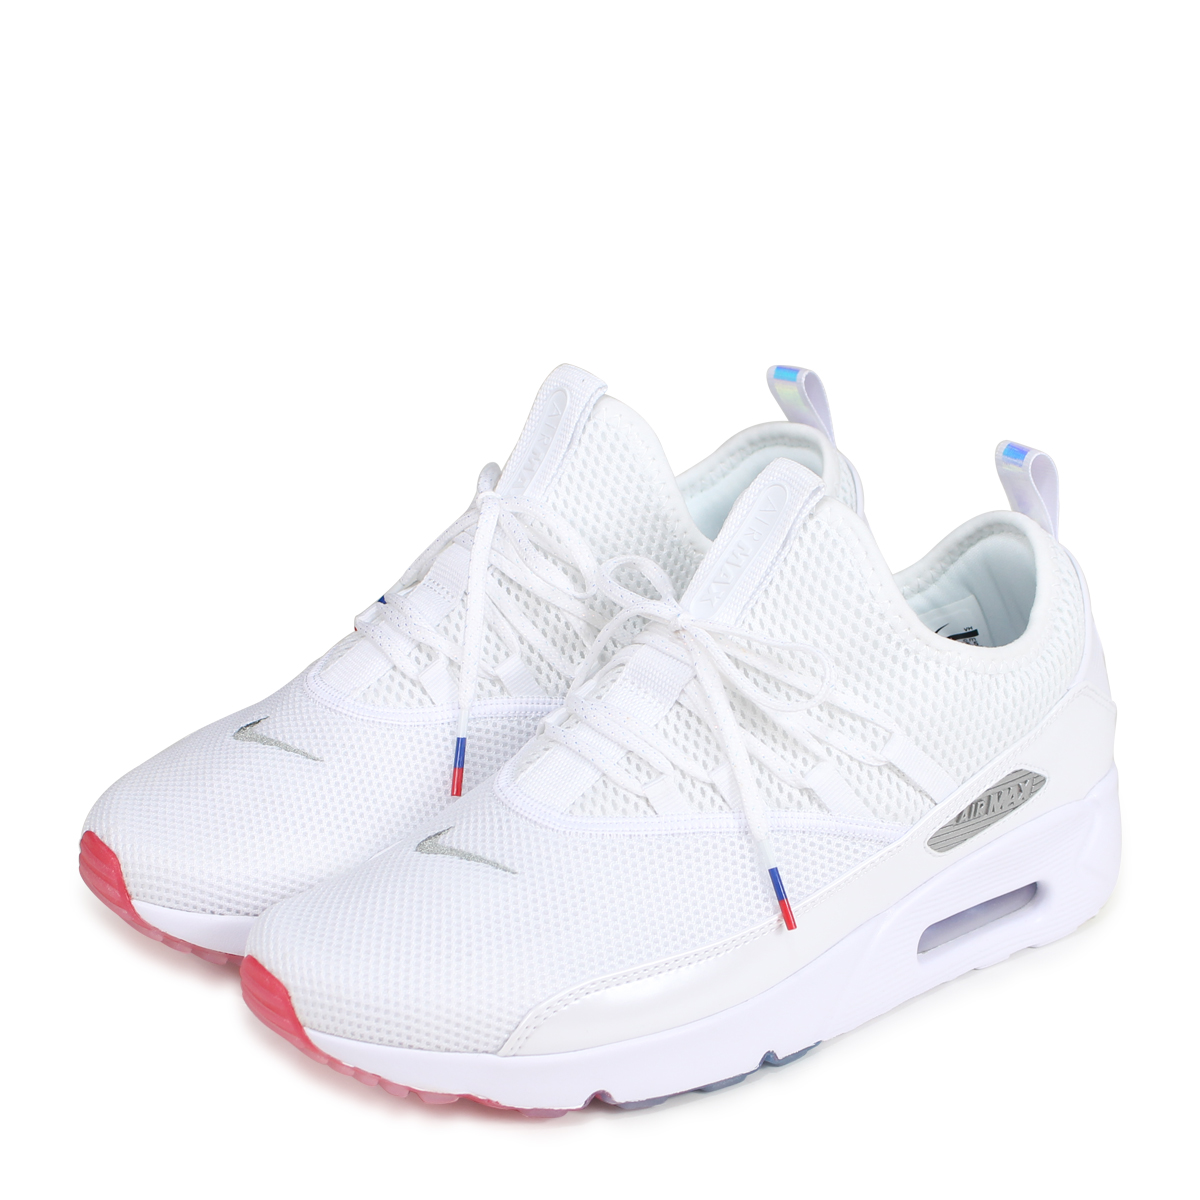 NIKE AIR MAX 90 EZ Kie Ney AMAX 90 sneakers men AQ7980 100 white